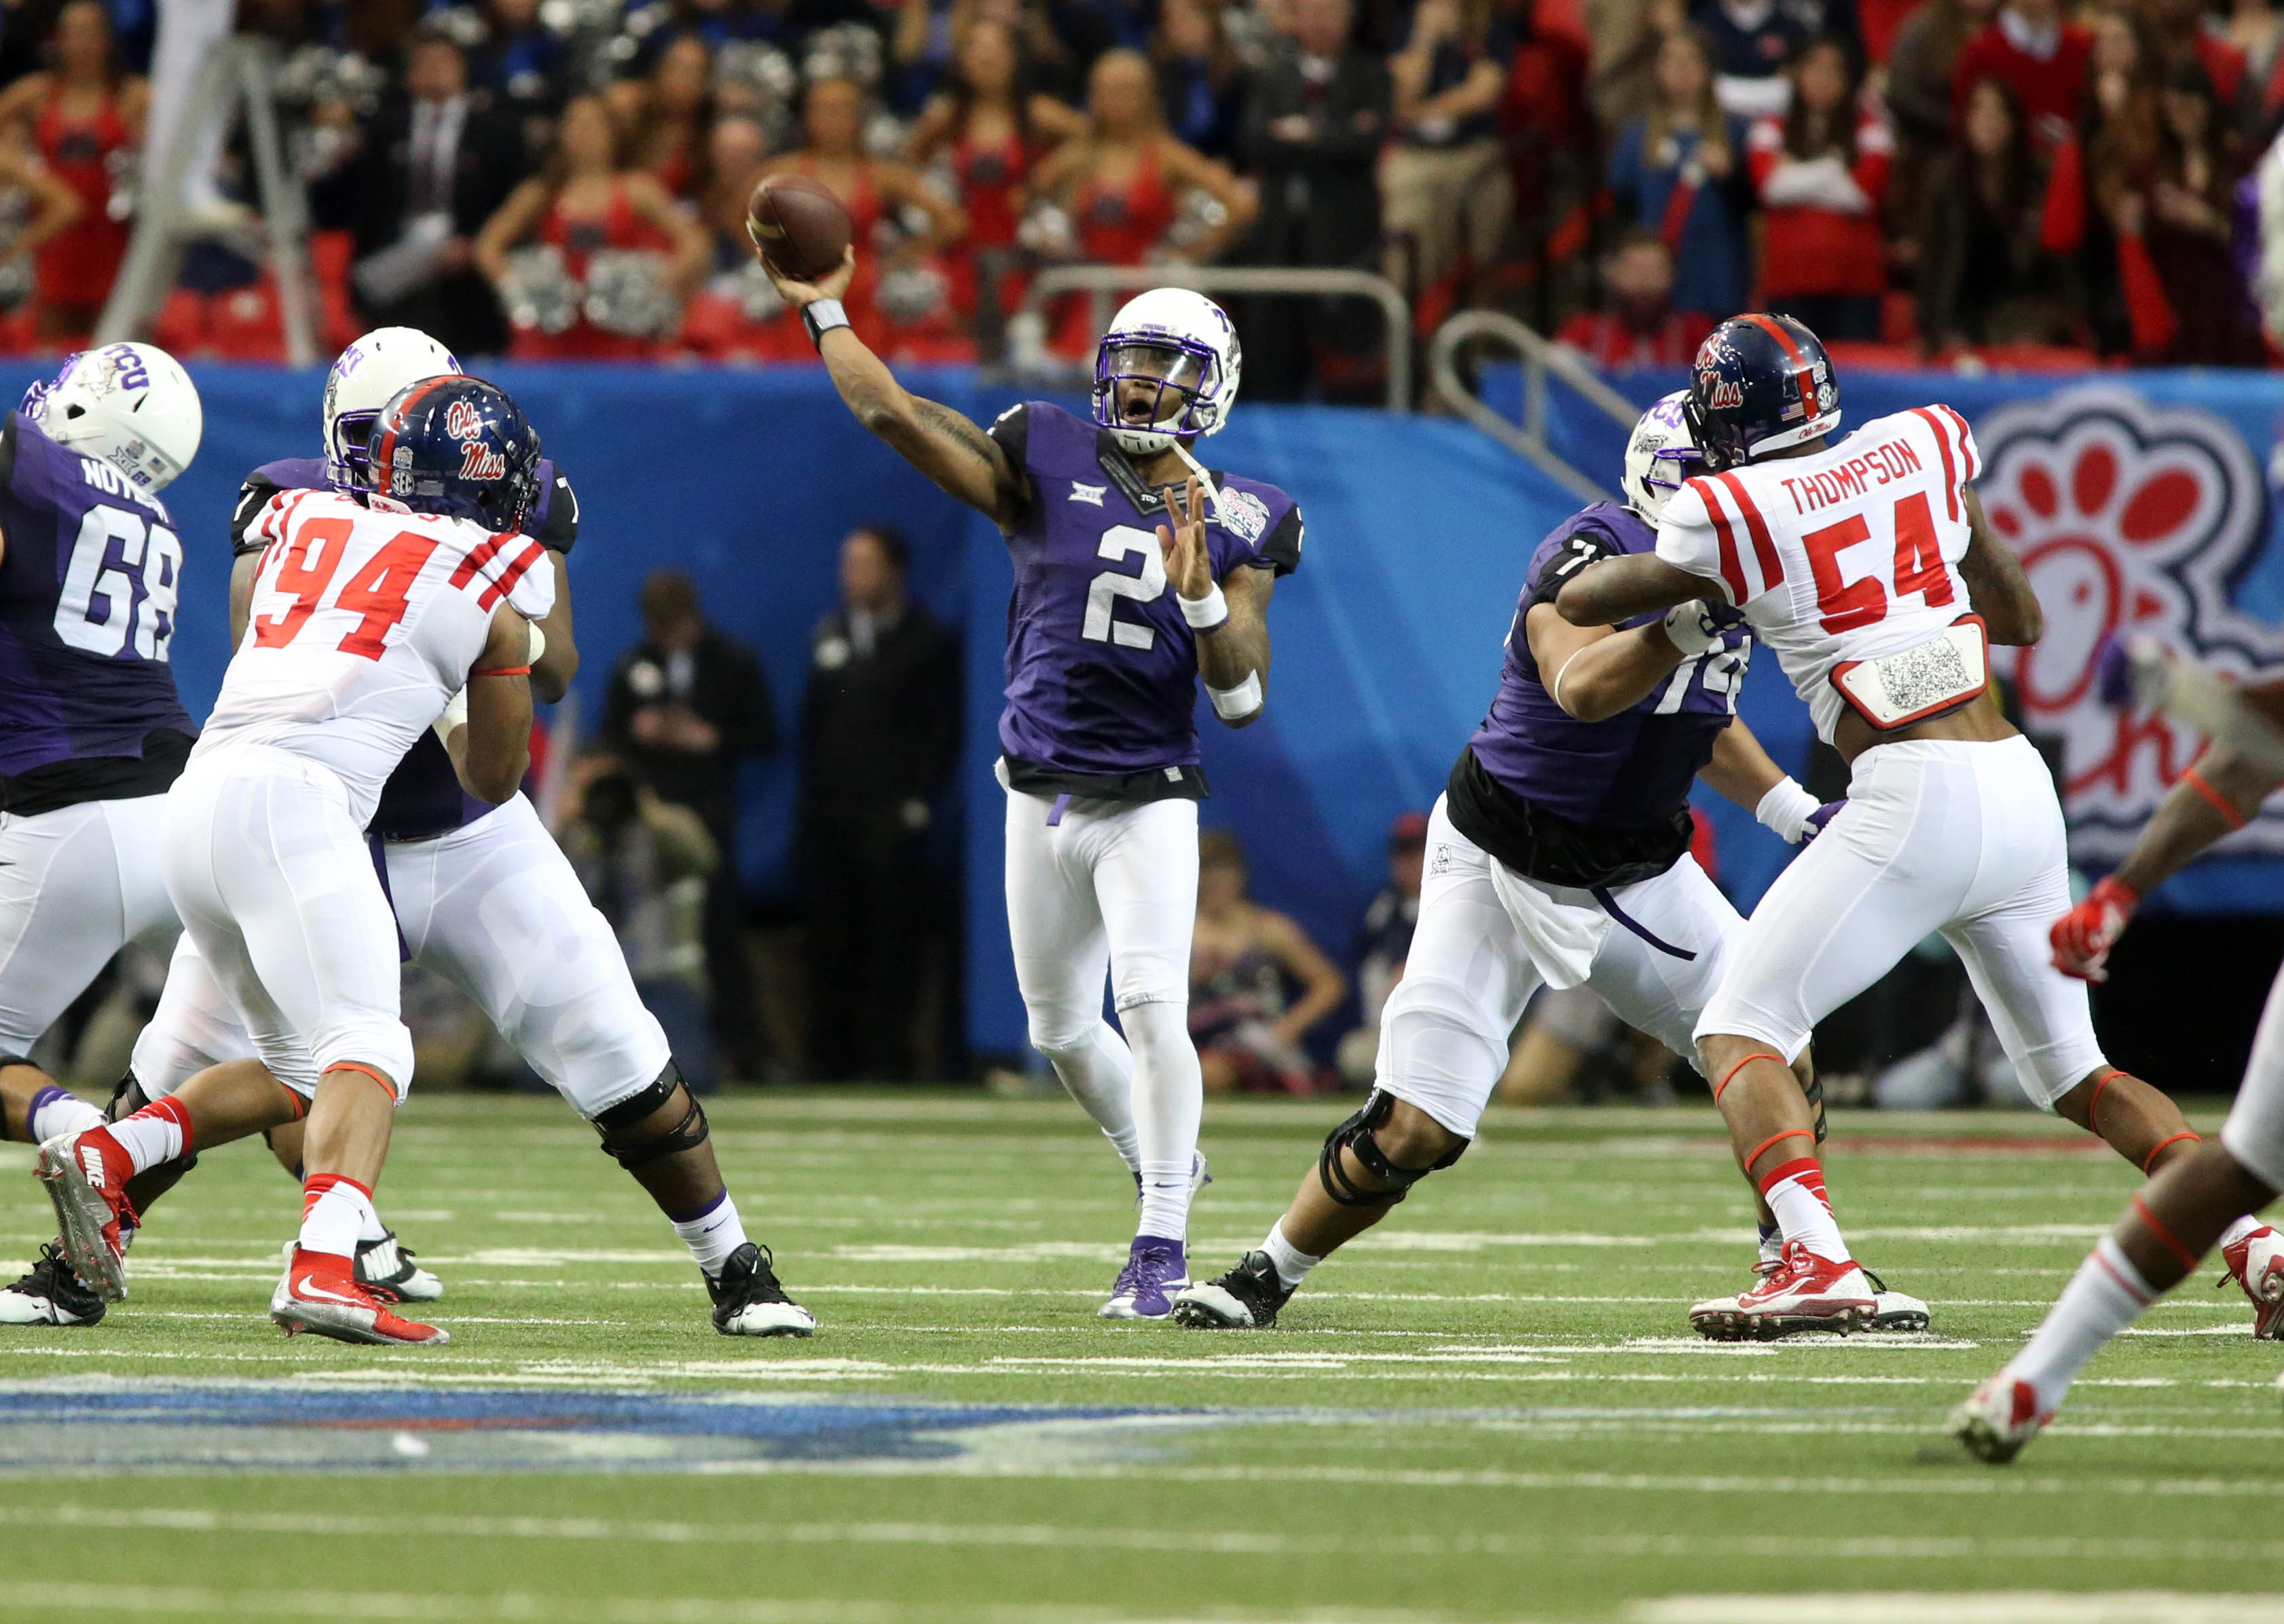 Dec 31, 2014; Atlanta , GA, USA; TCU Horned Frogs quarterback Trevone Boykin (2) throws the ball in the third quarter against the Mississippi Rebels in the 2014 Peach Bowl at the Georgia Dome. Mandatory Credit:ORG XMIT: USATSI-212012 ORIG FILE ID: 20141231_rvr_gb1_094.jpg